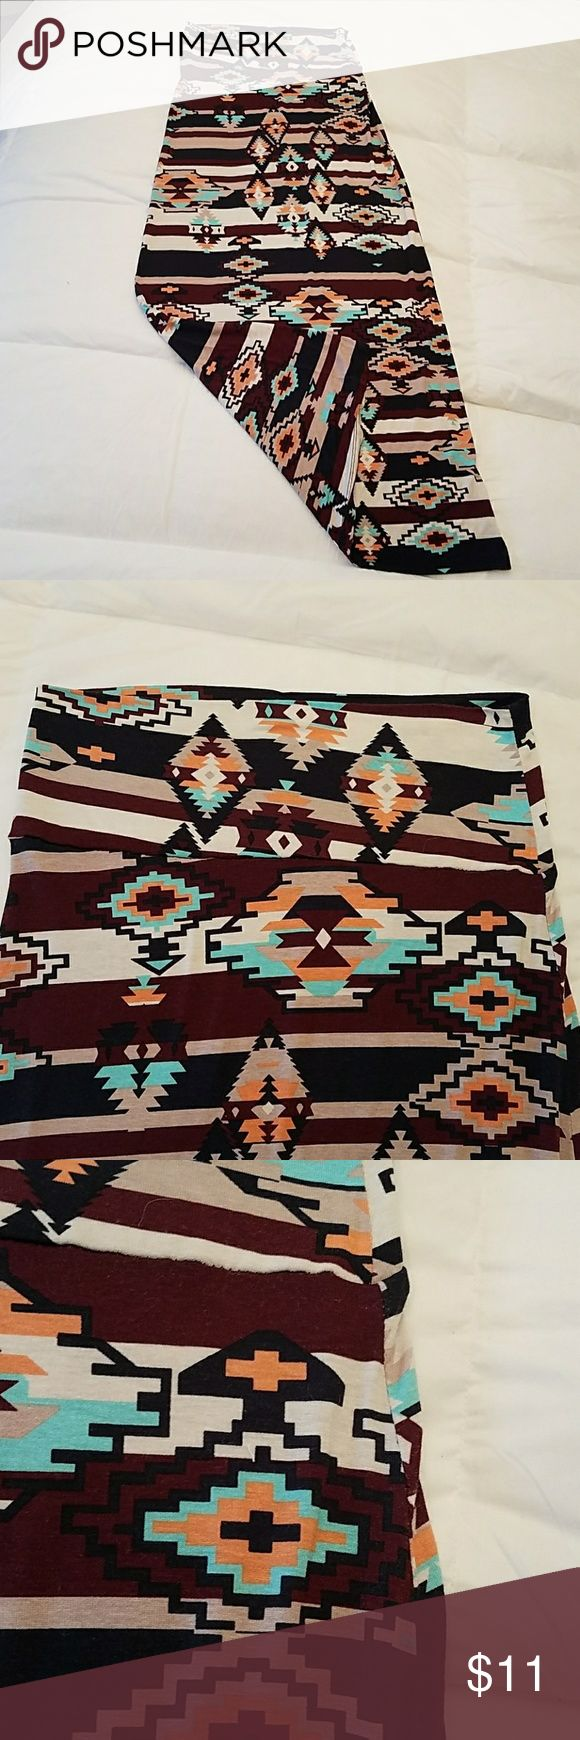 Rue 21 Aztec print maxi skirt size small Rue 21 Aztec print maxi skirt size small. Very comfy long maxi skirt with an Aztec print in 10 blue orange and burgundy brownish colors, throw it on with a T-shirt and a pair of flip-flops and you're ready for your weekend, shorter ladies might even be able to pull it all the way up and wear it as a dress or cover up for the beach. 🌴 Rue 21 Skirts Maxi